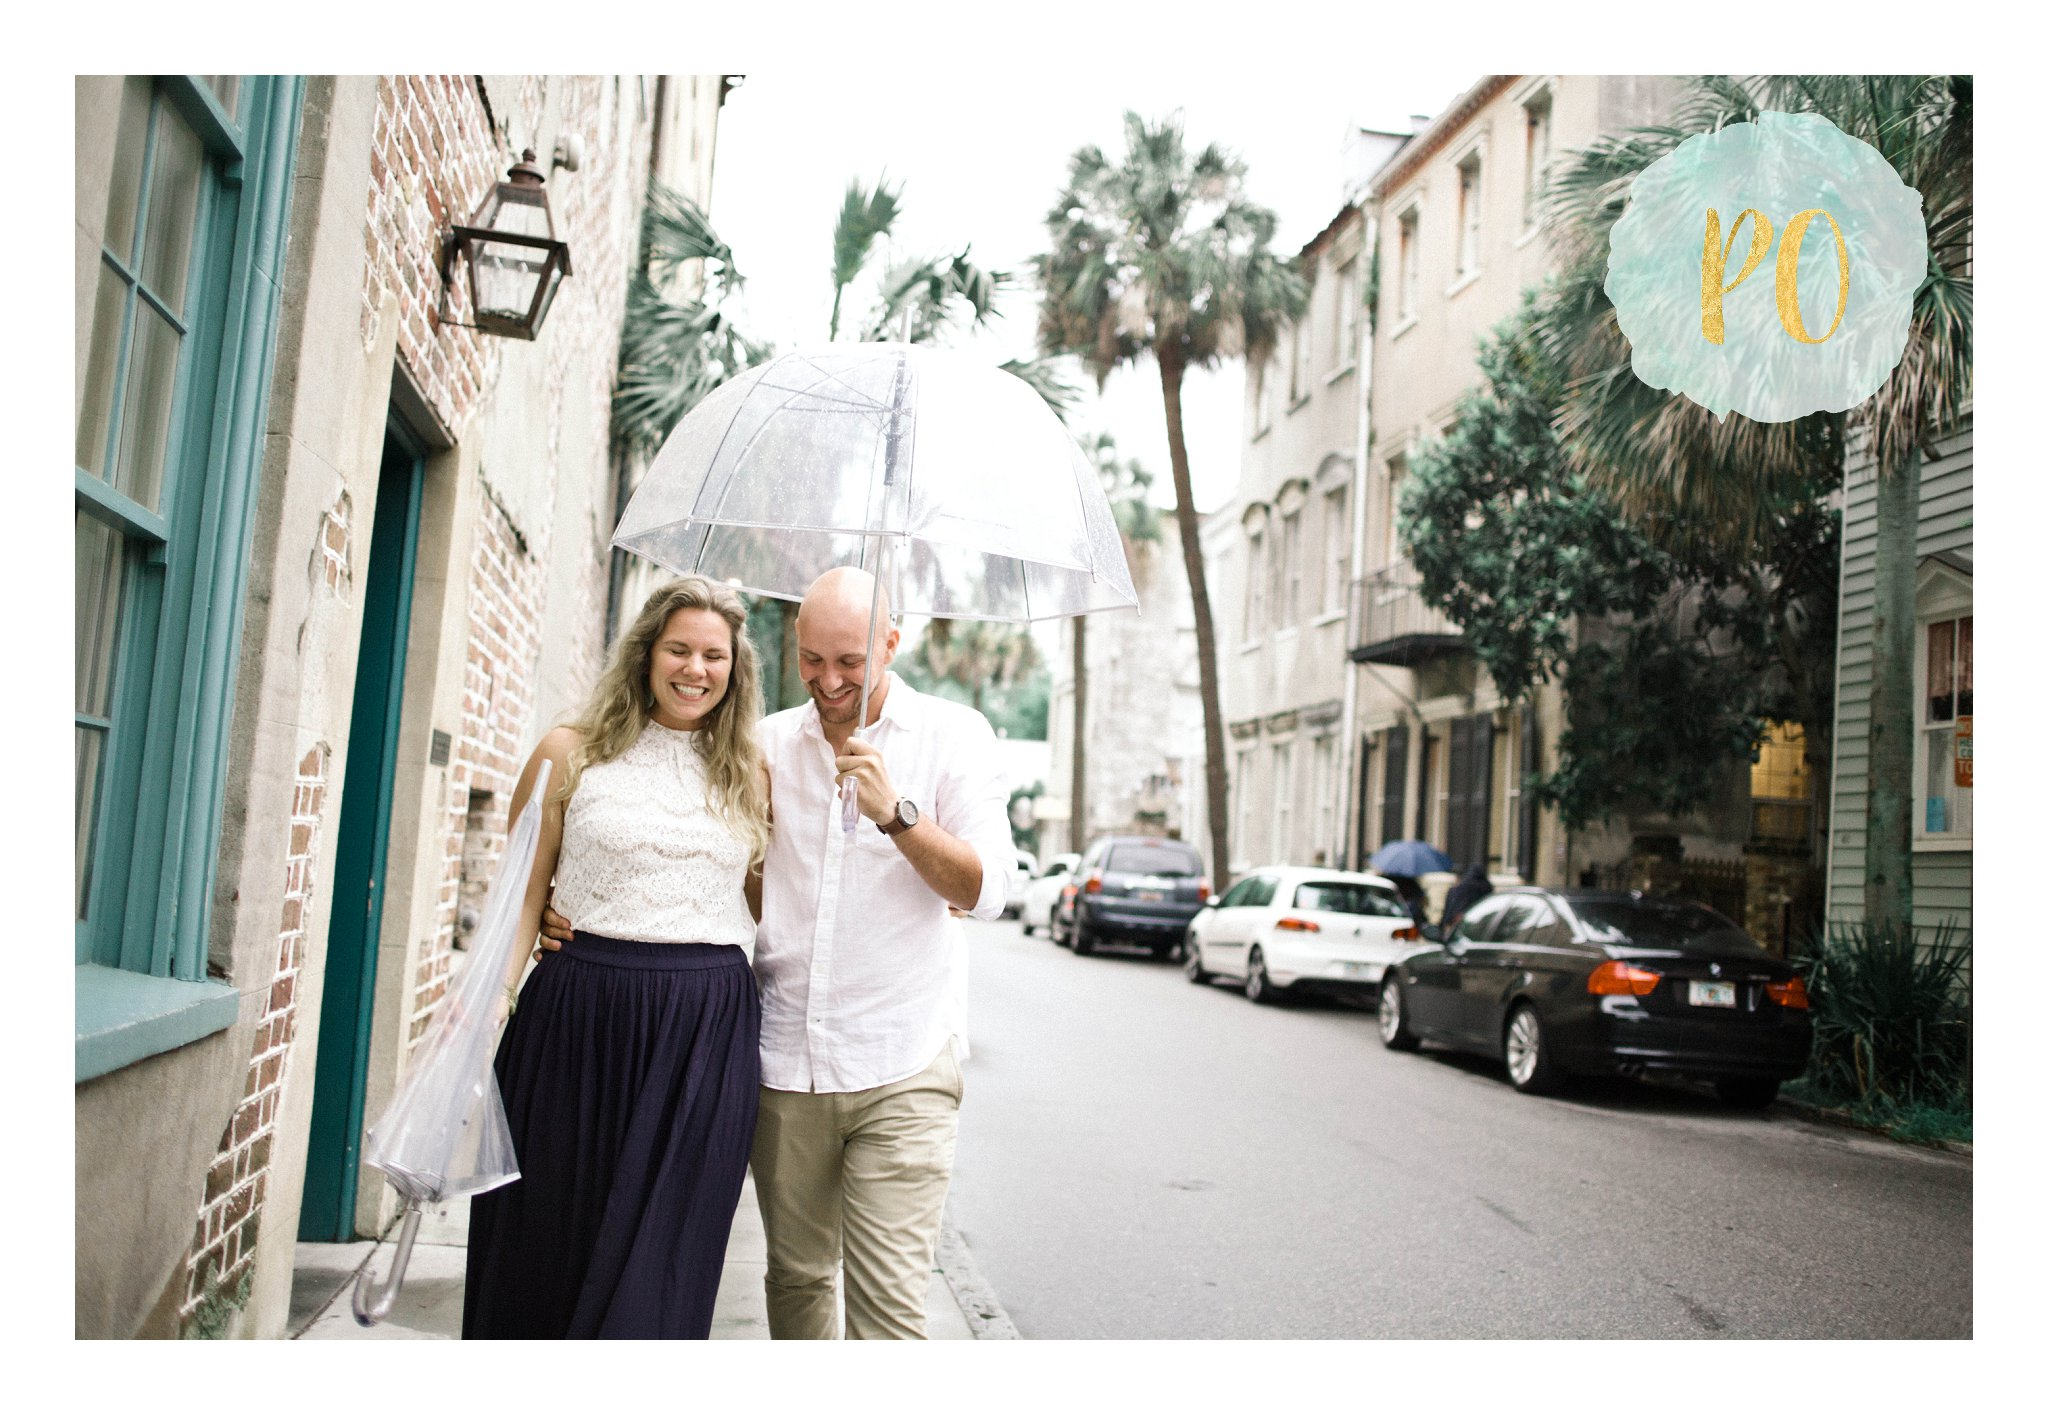 downtown-historic-charleston-sc-engagement-photos_0042.jpg